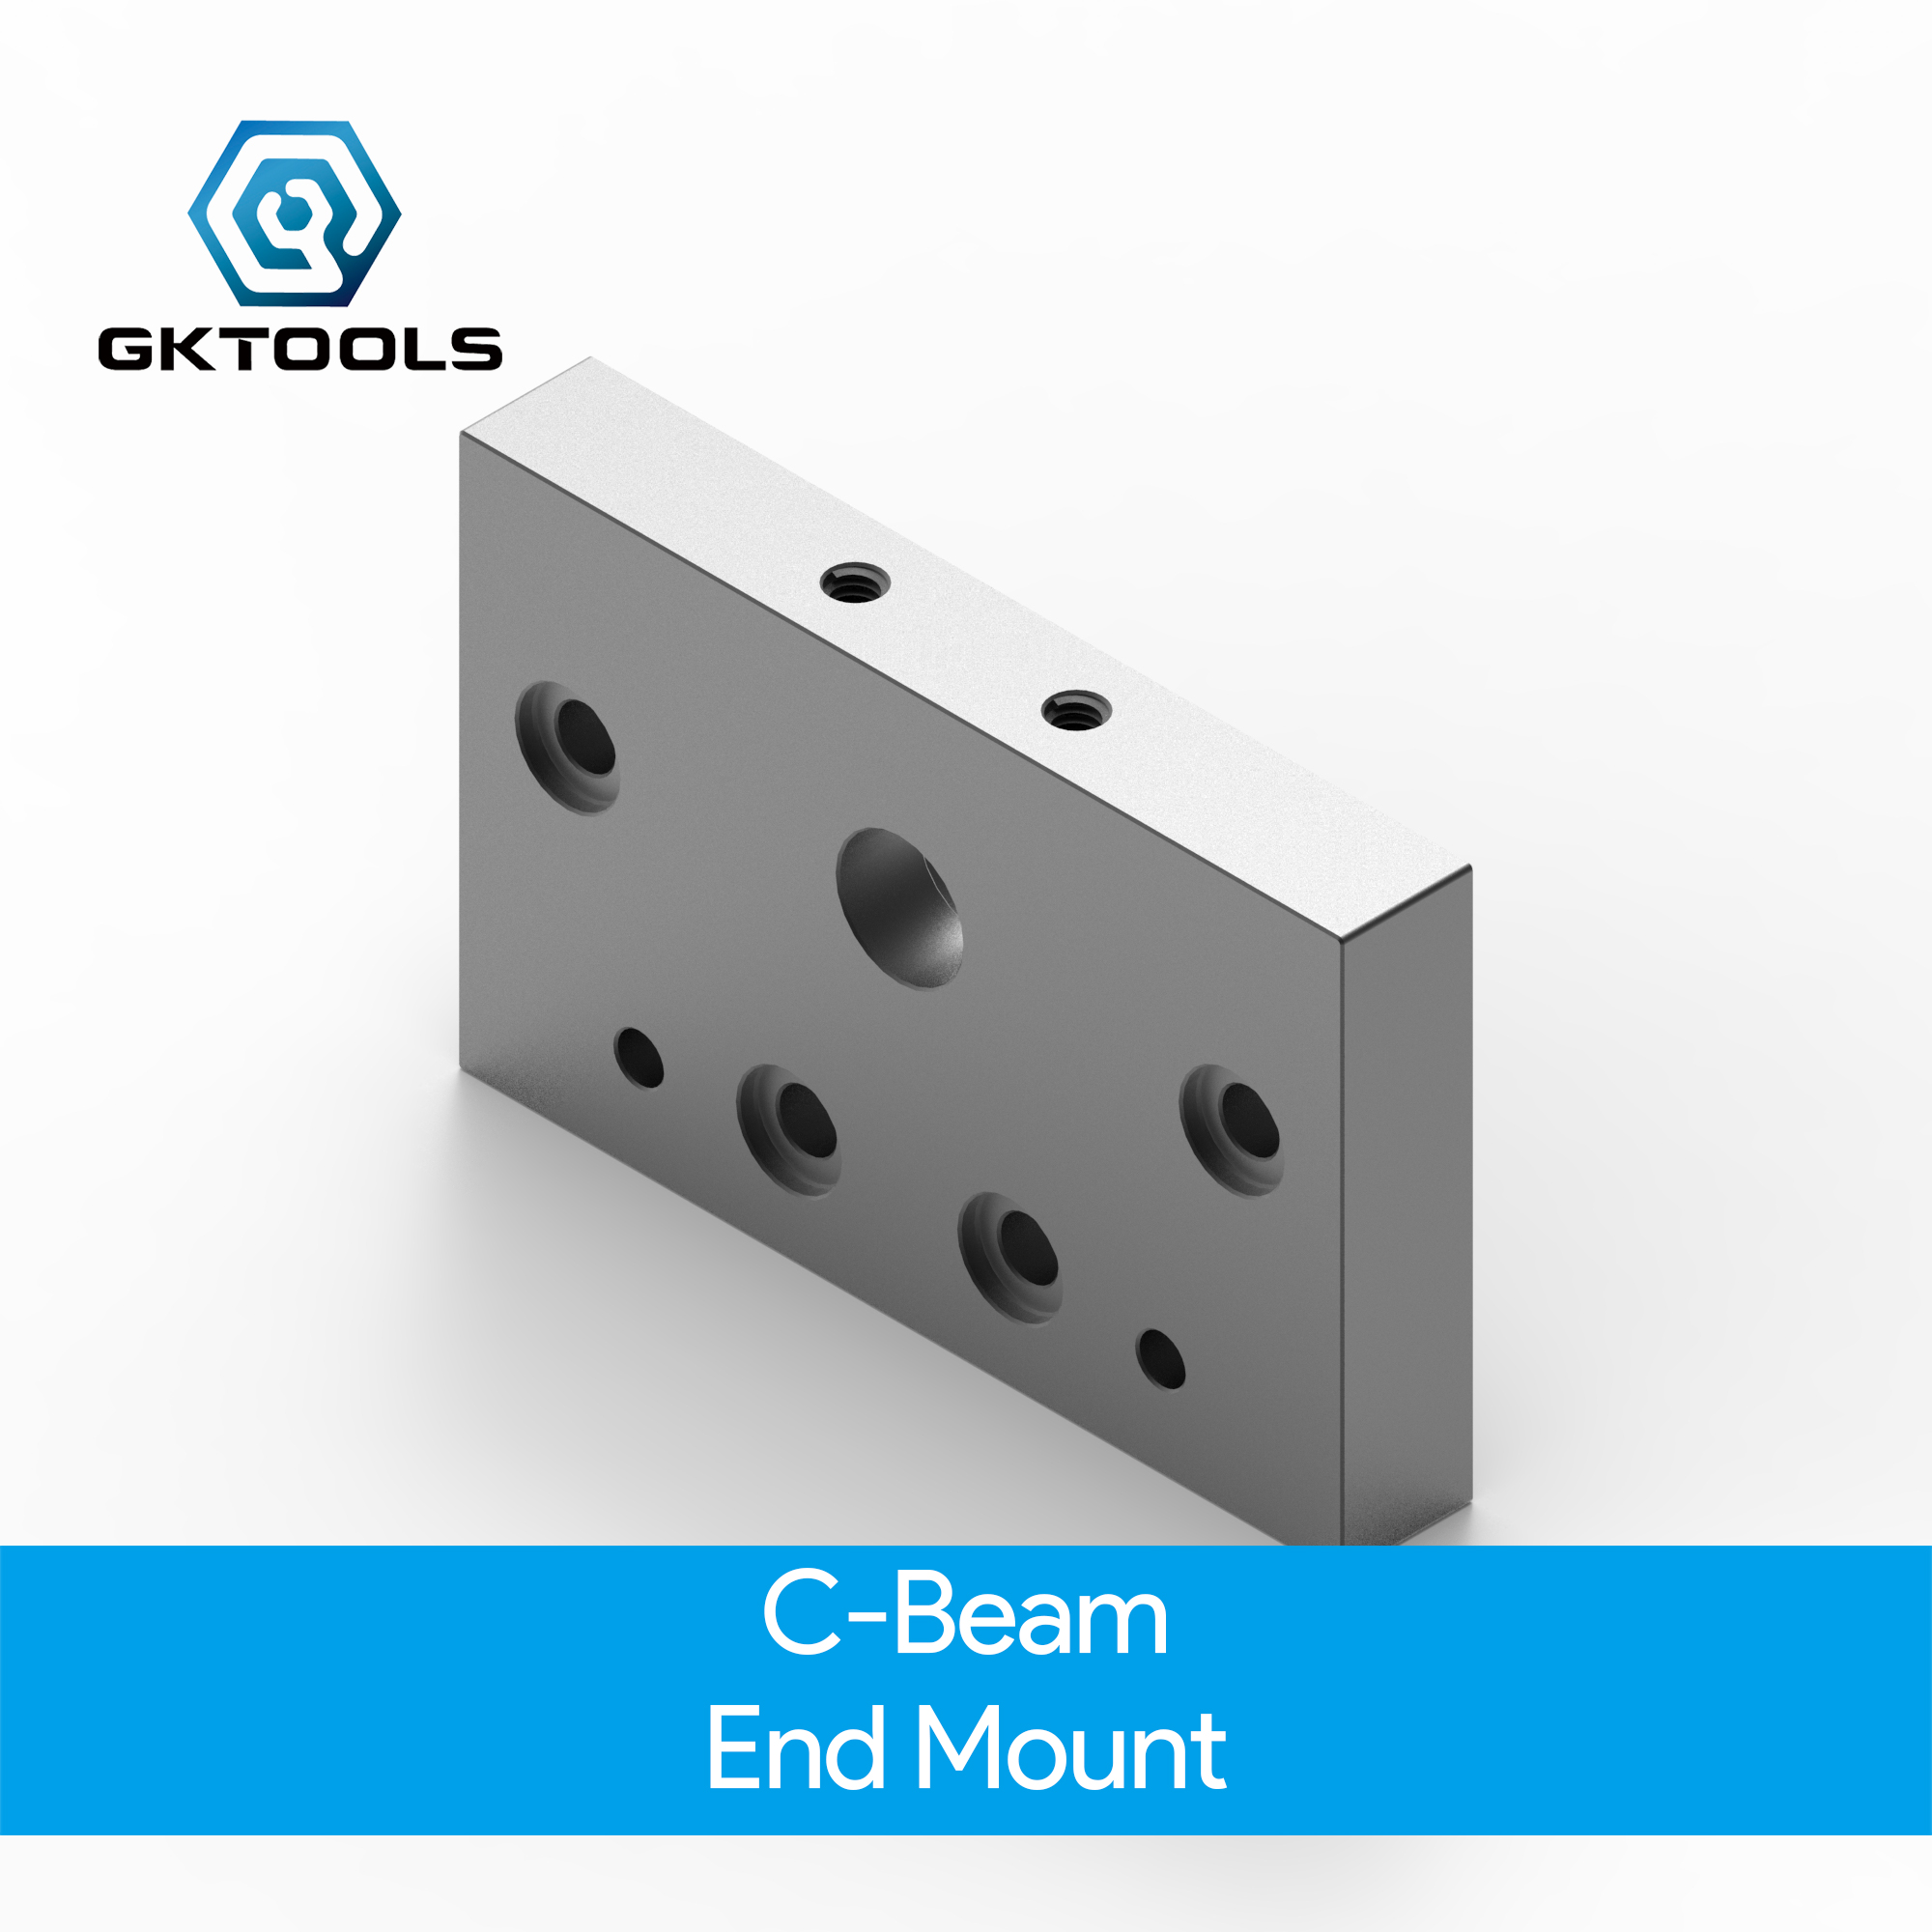 OpenBuilds C-Beam® End Mount